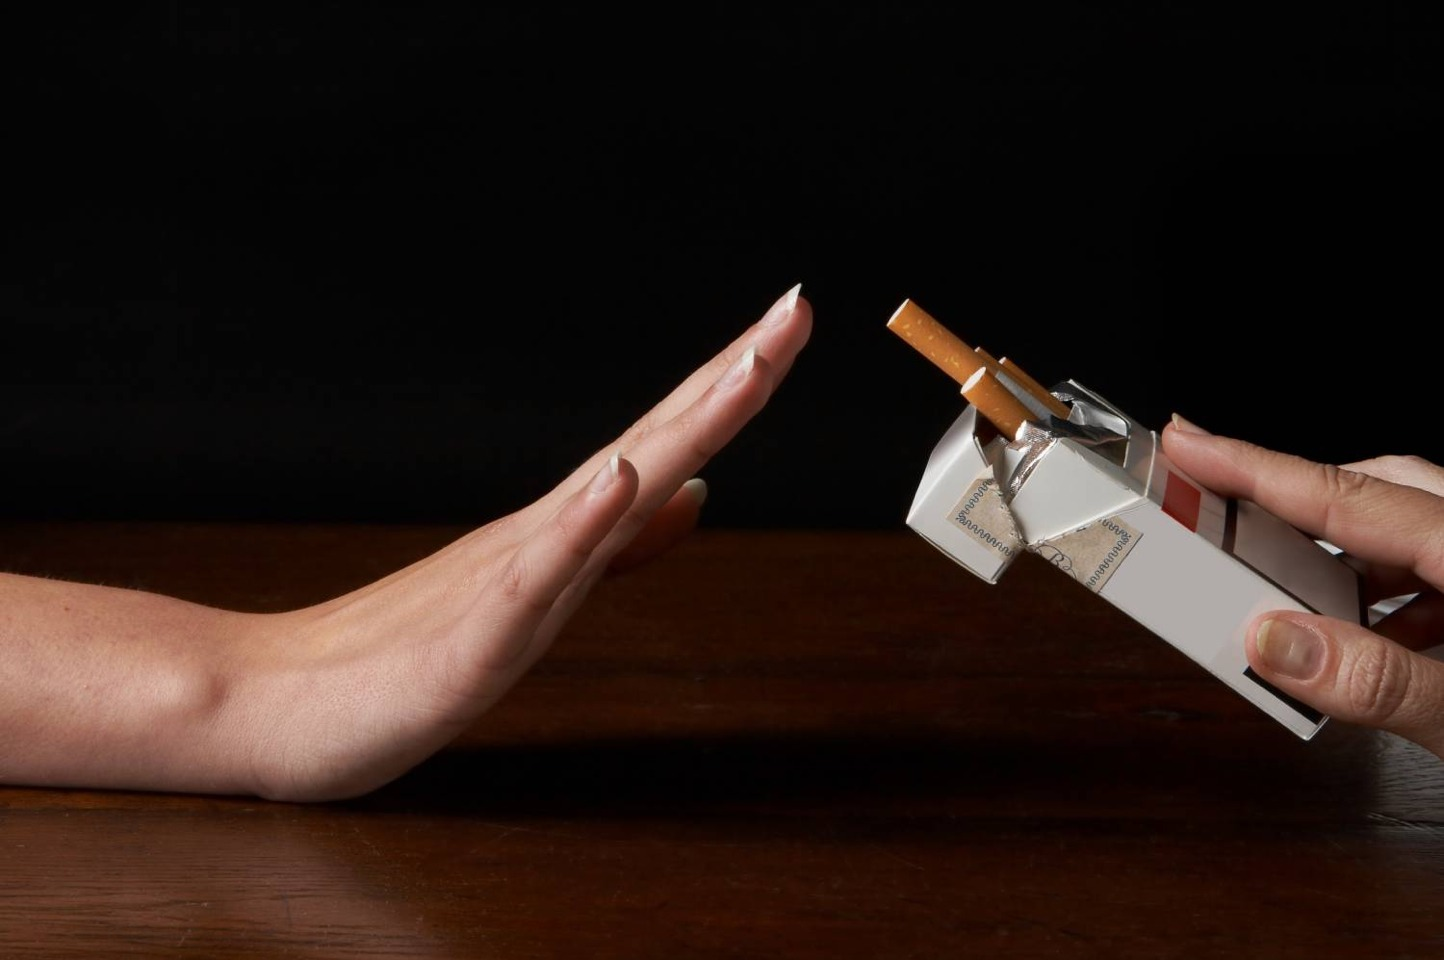 If you're trying to quit smoking go to a sauna for three days in a row. You'll sweat out the nicotine and it'll be easier to quit.